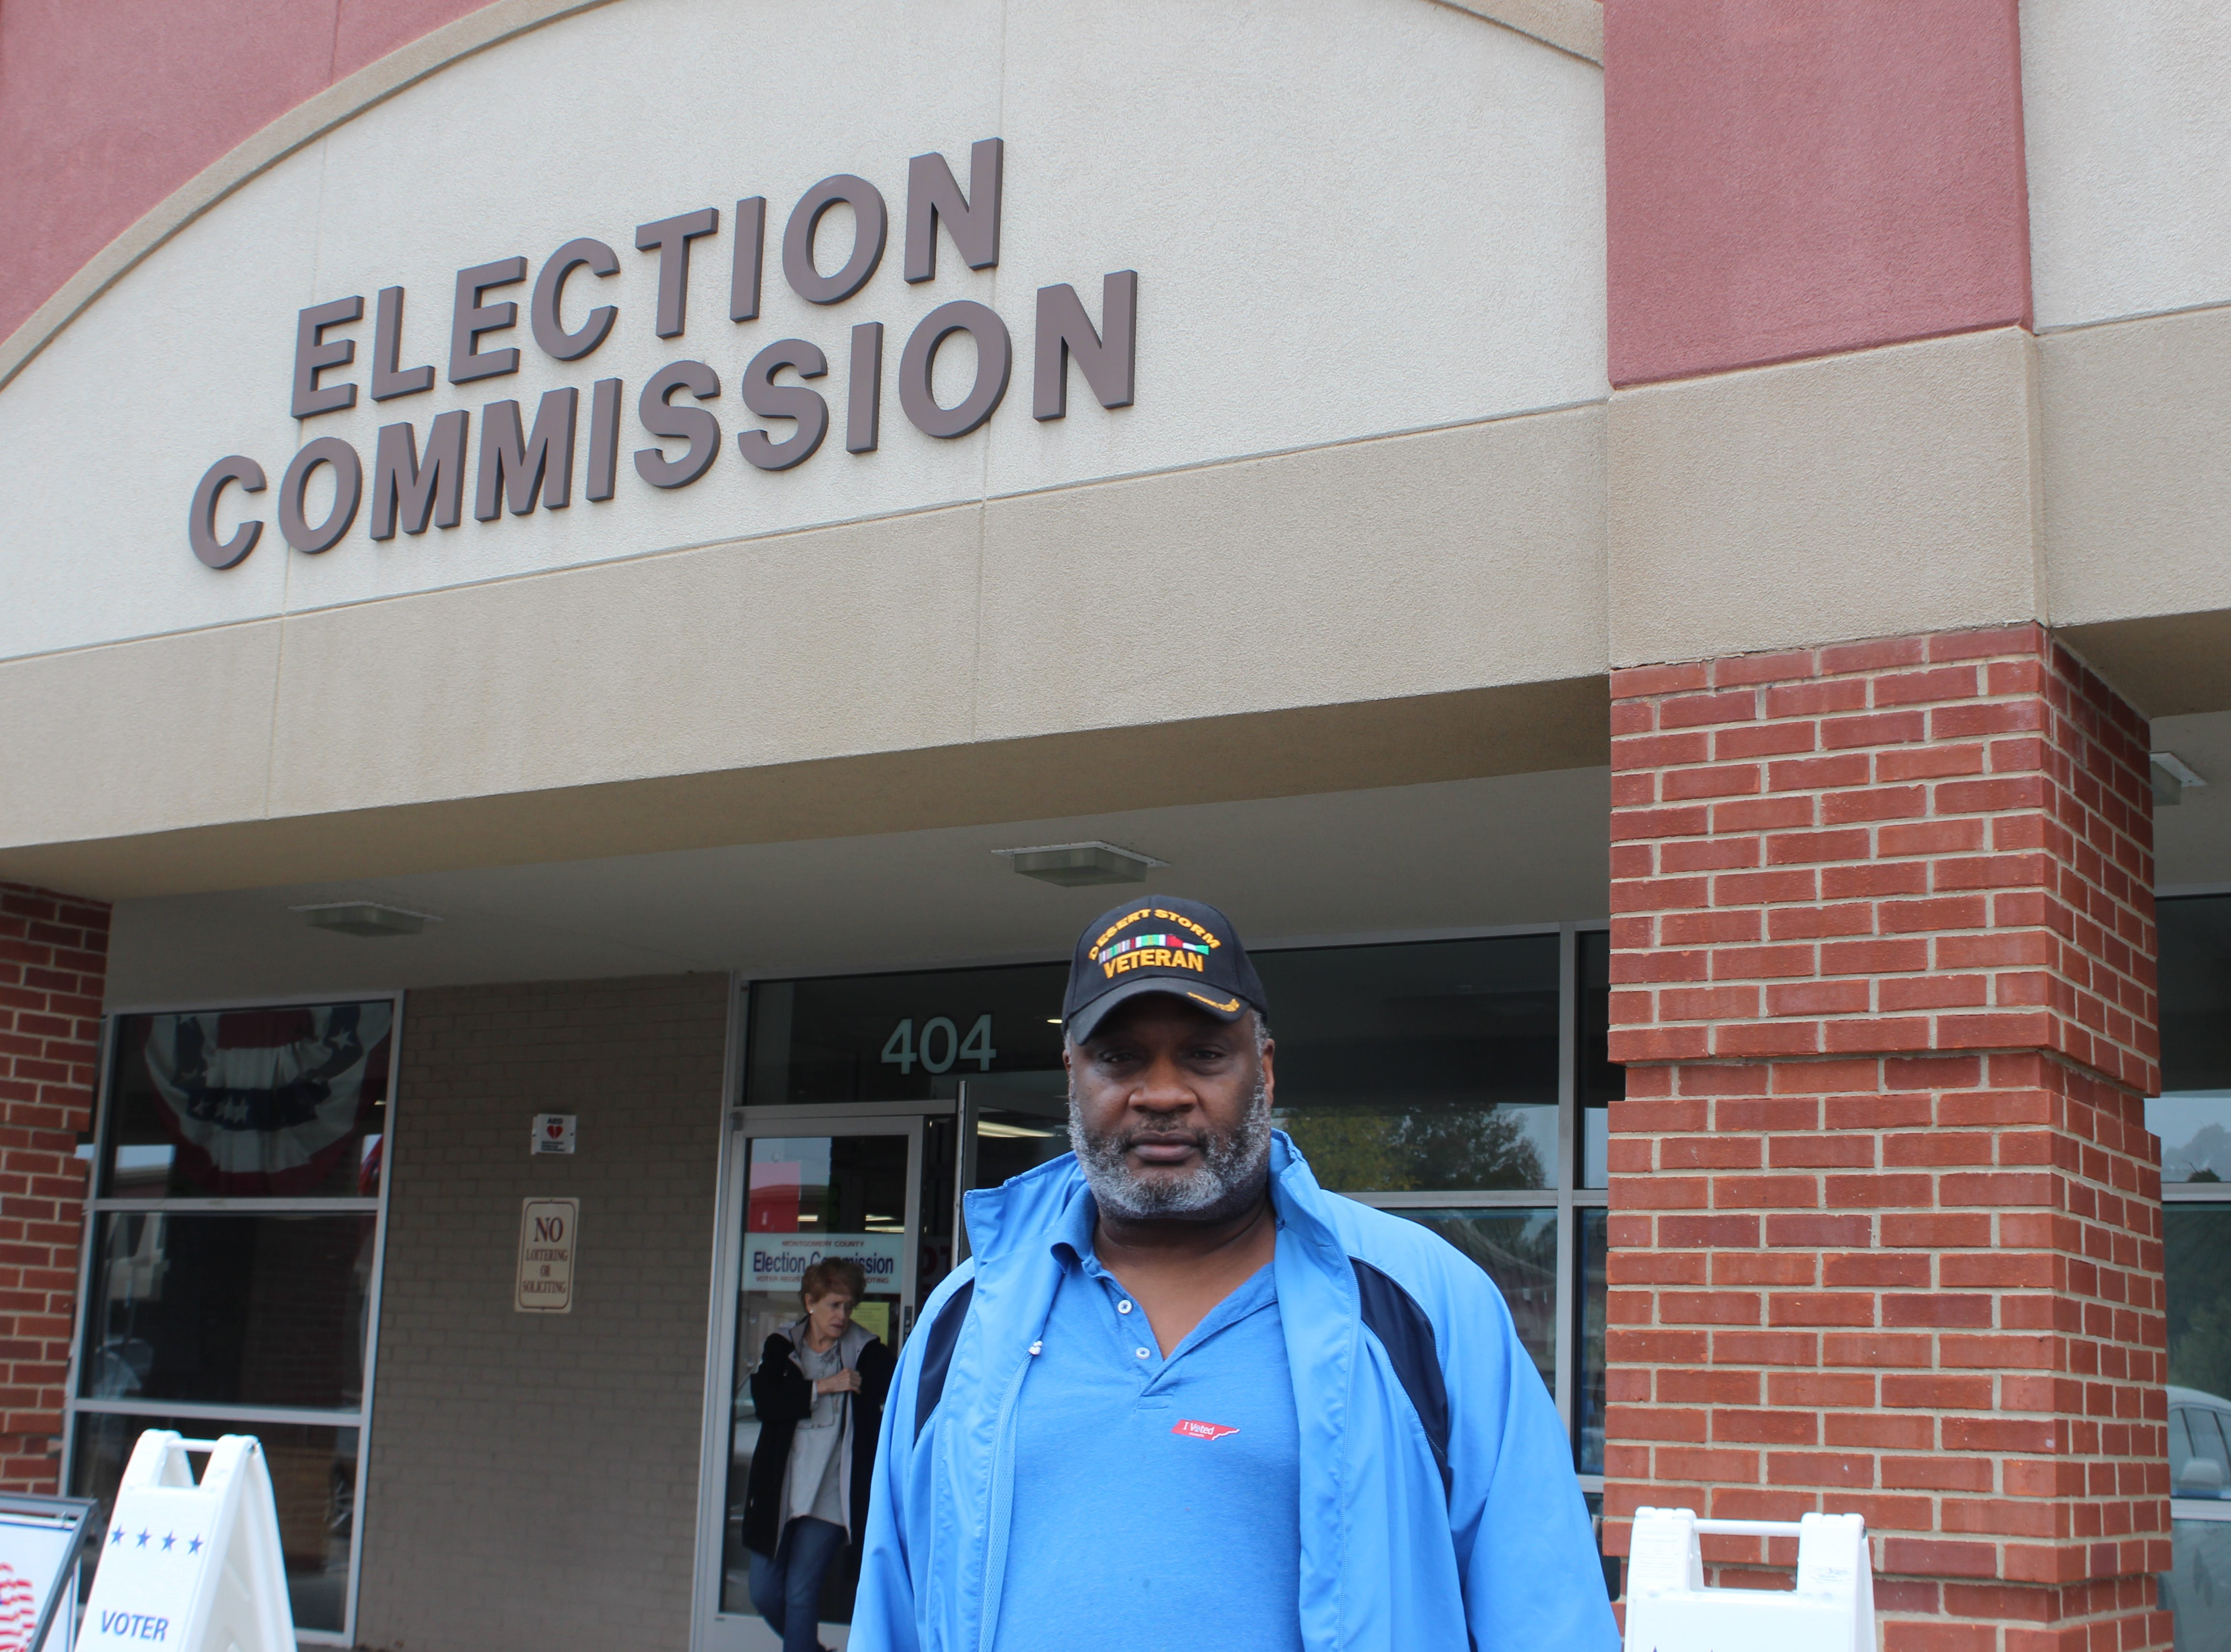 Veteran Greg Joyner of Clarksville leaving the Election Commission office after casting his early ballot.